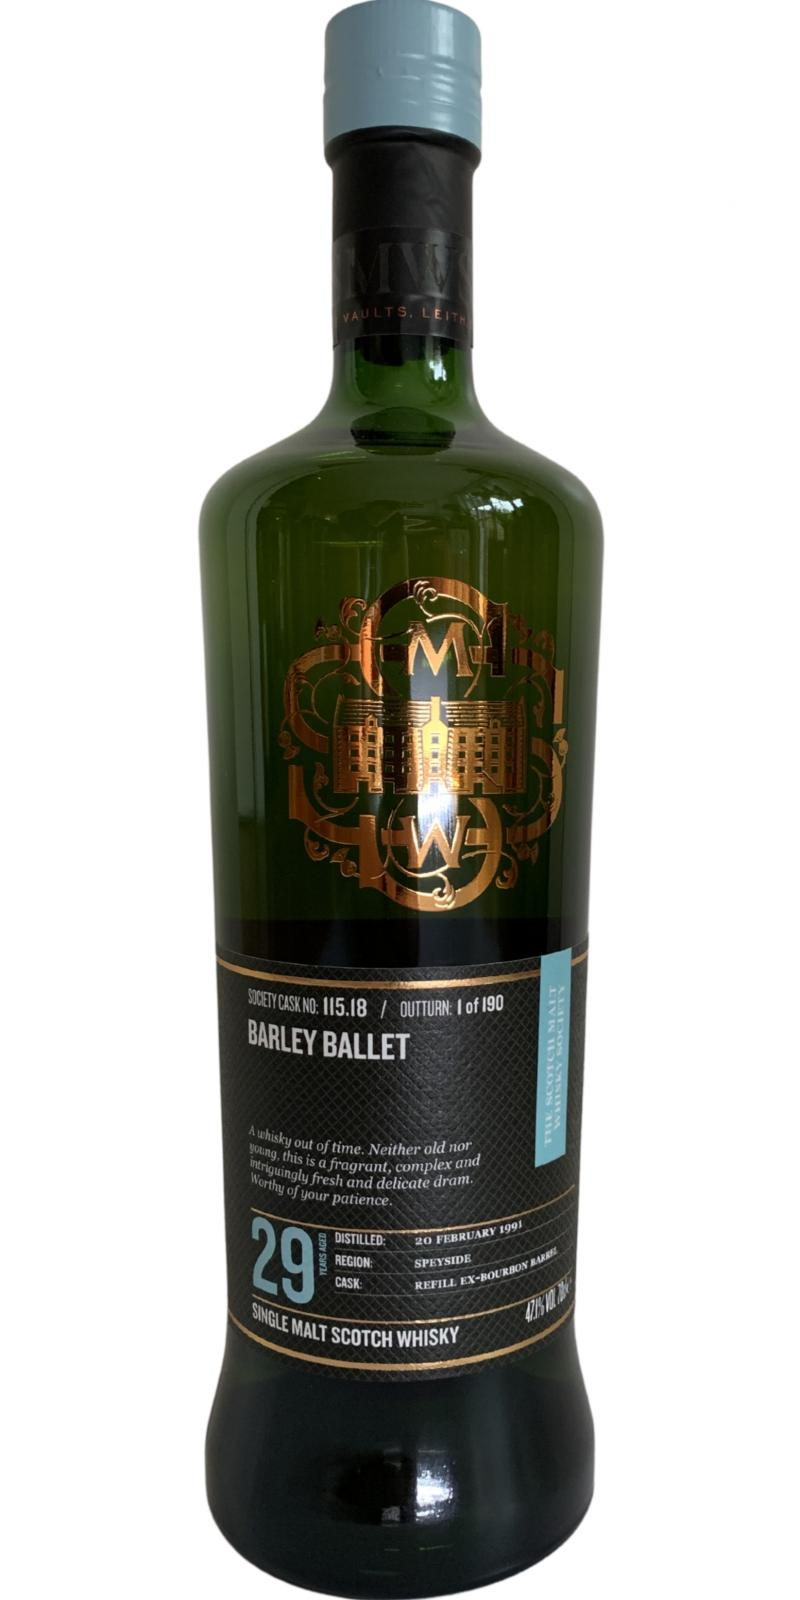 An Cnoc 1991 SMWS 115.18